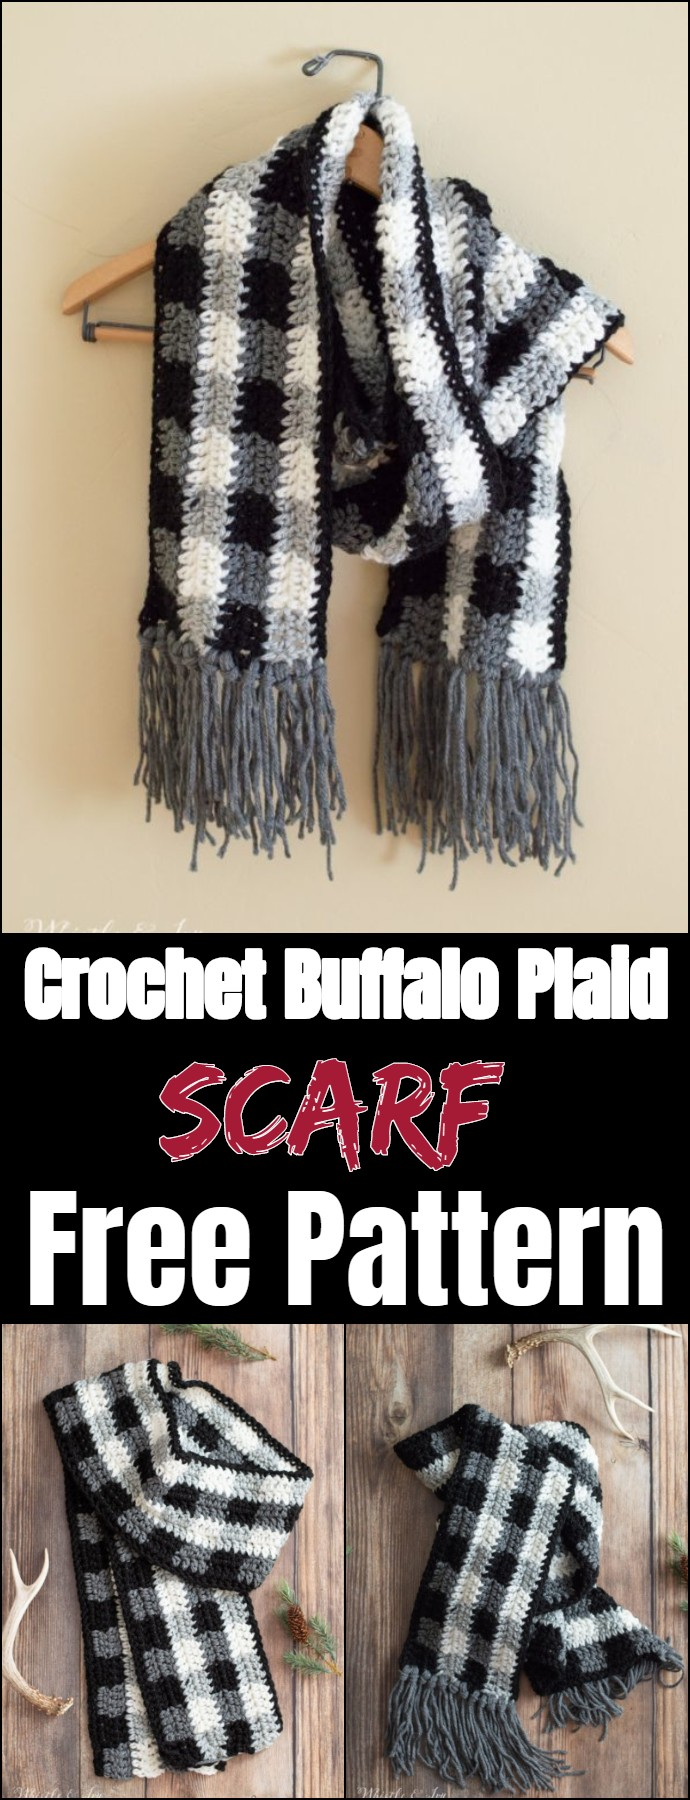 Crochet Buffalo Plaid Scarf Free Pattern